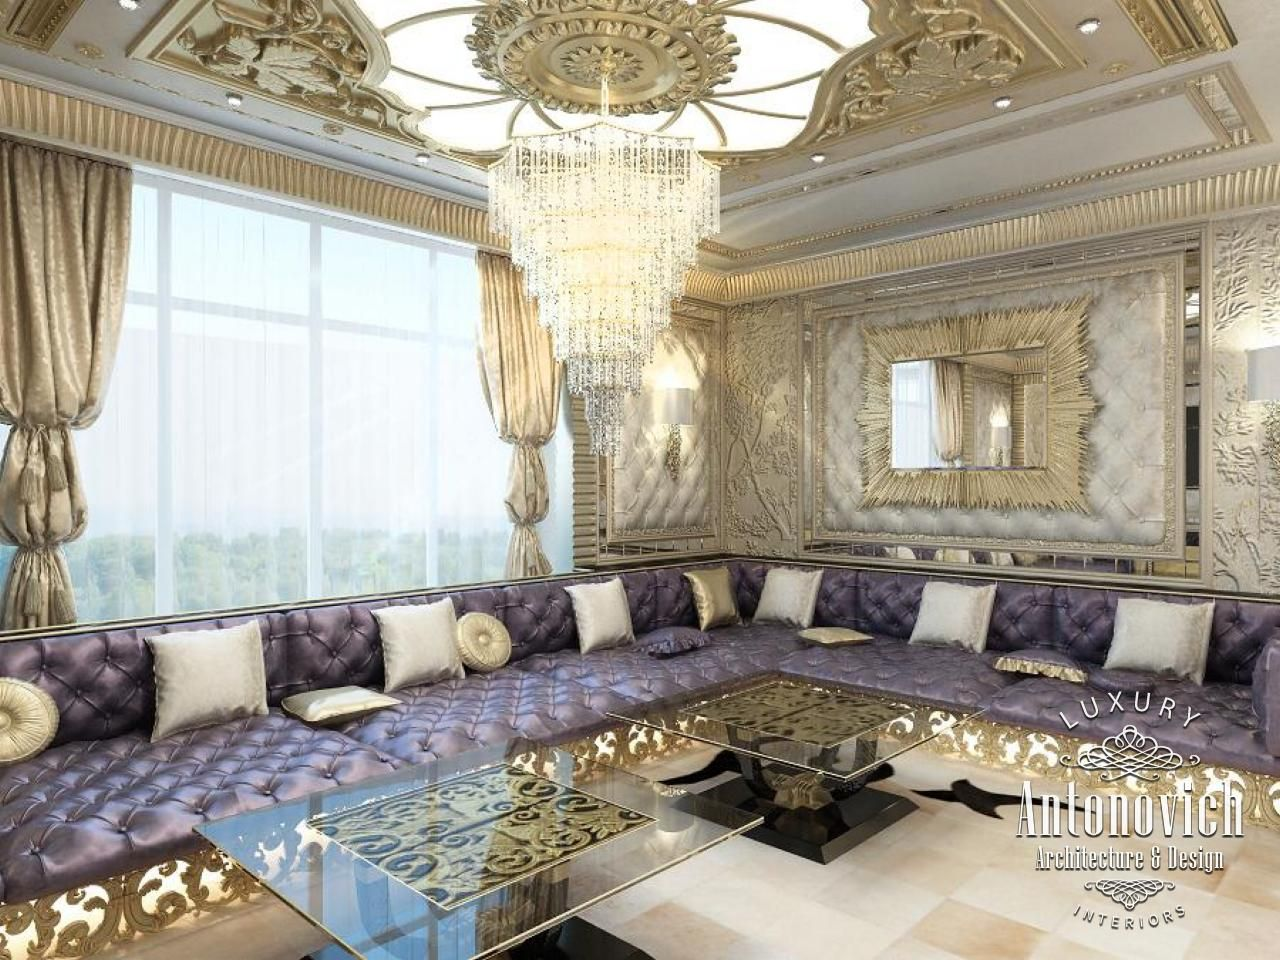 Villa interior design in dubai villa in qatar photo 21 for Villa interior design dubai